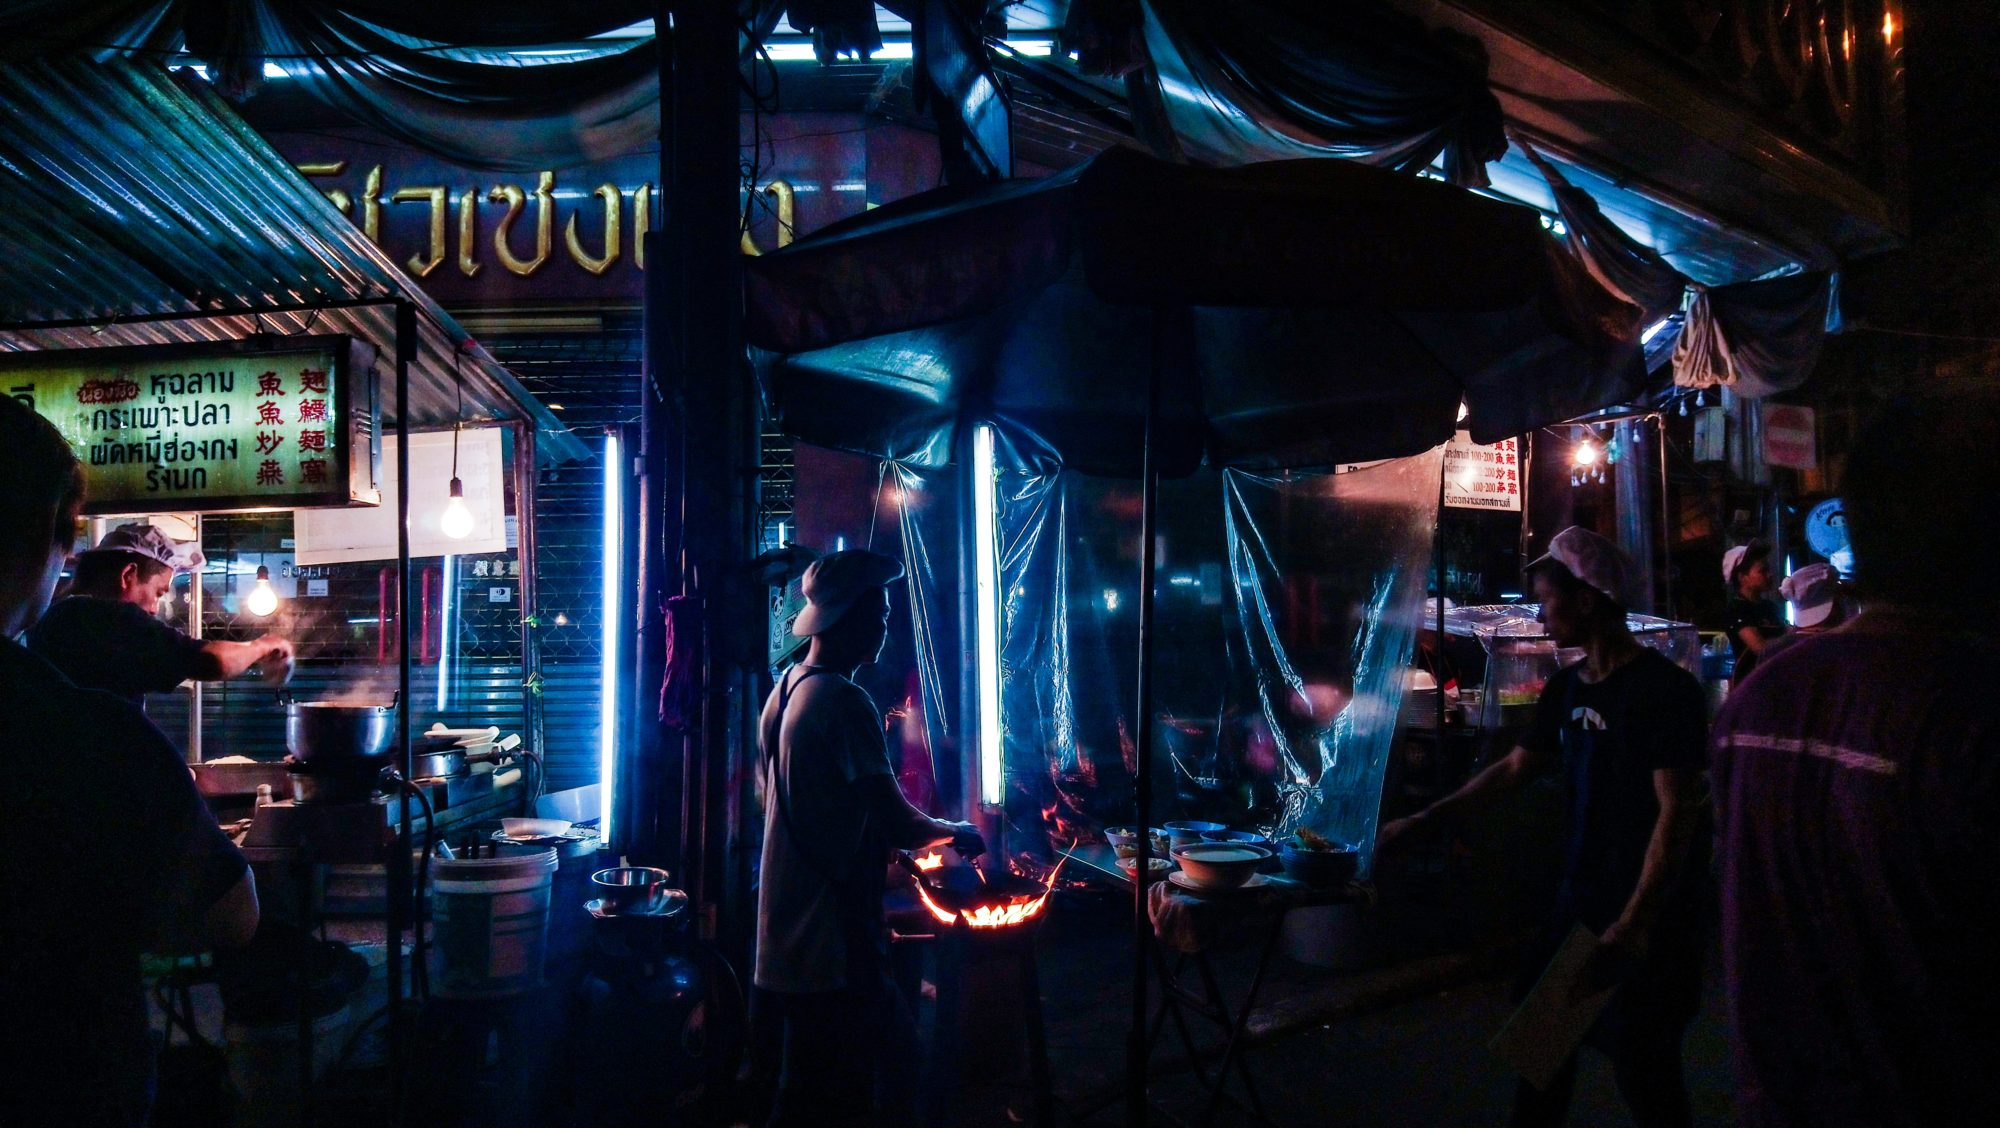 Night Markets in Chiang Mai